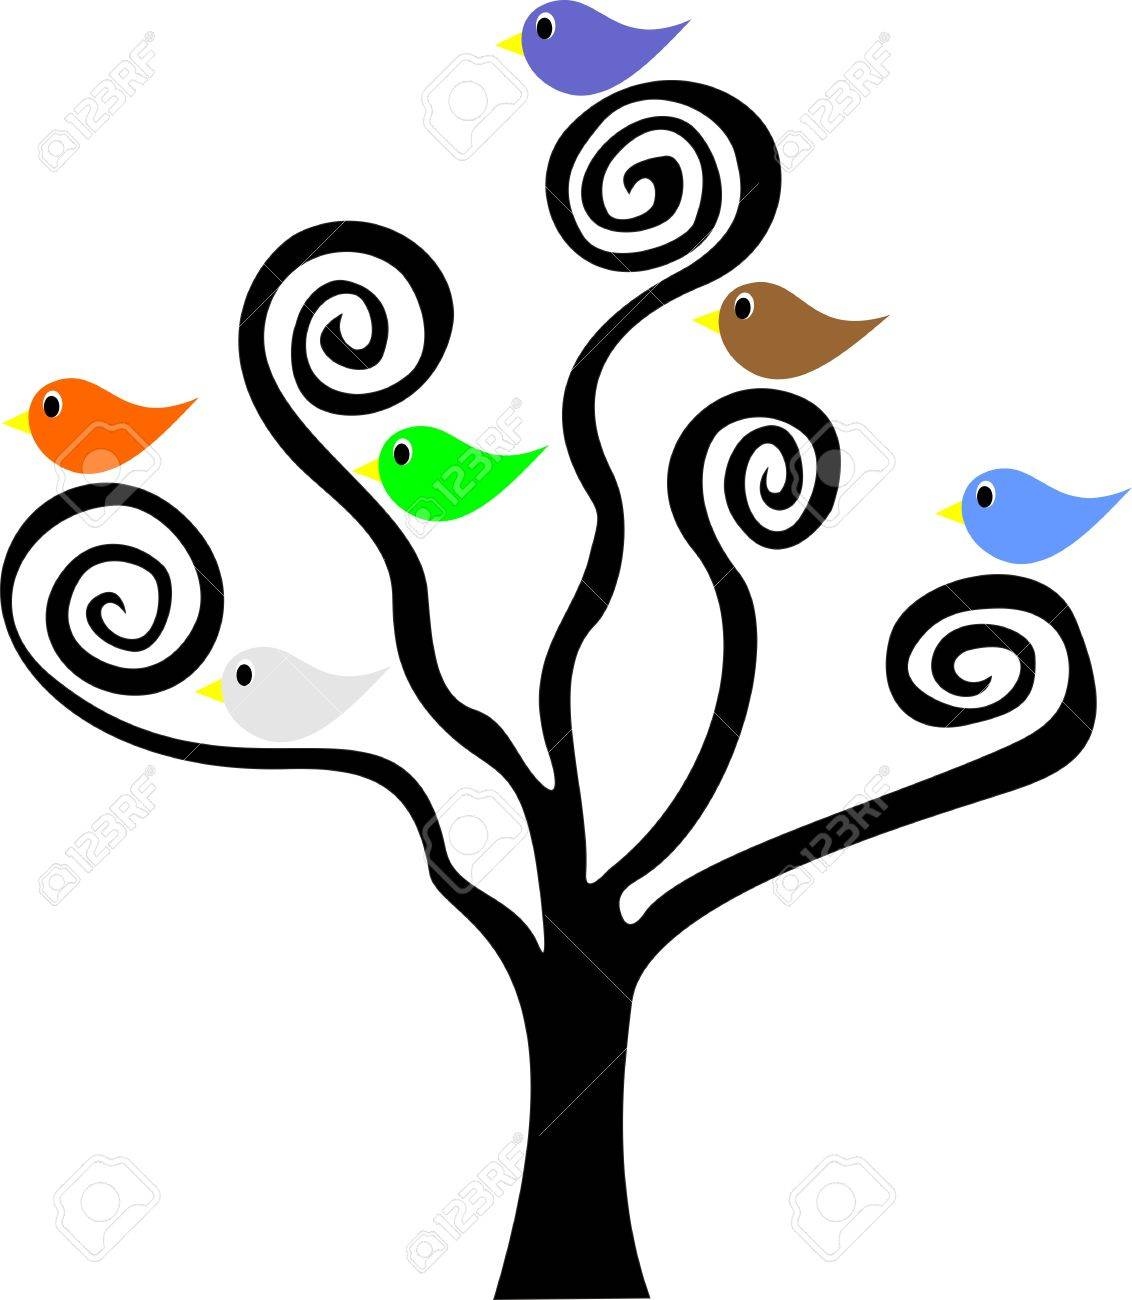 1132x1300 Six Birds Sitting In A Tree With Spiral Branches Royalty Free